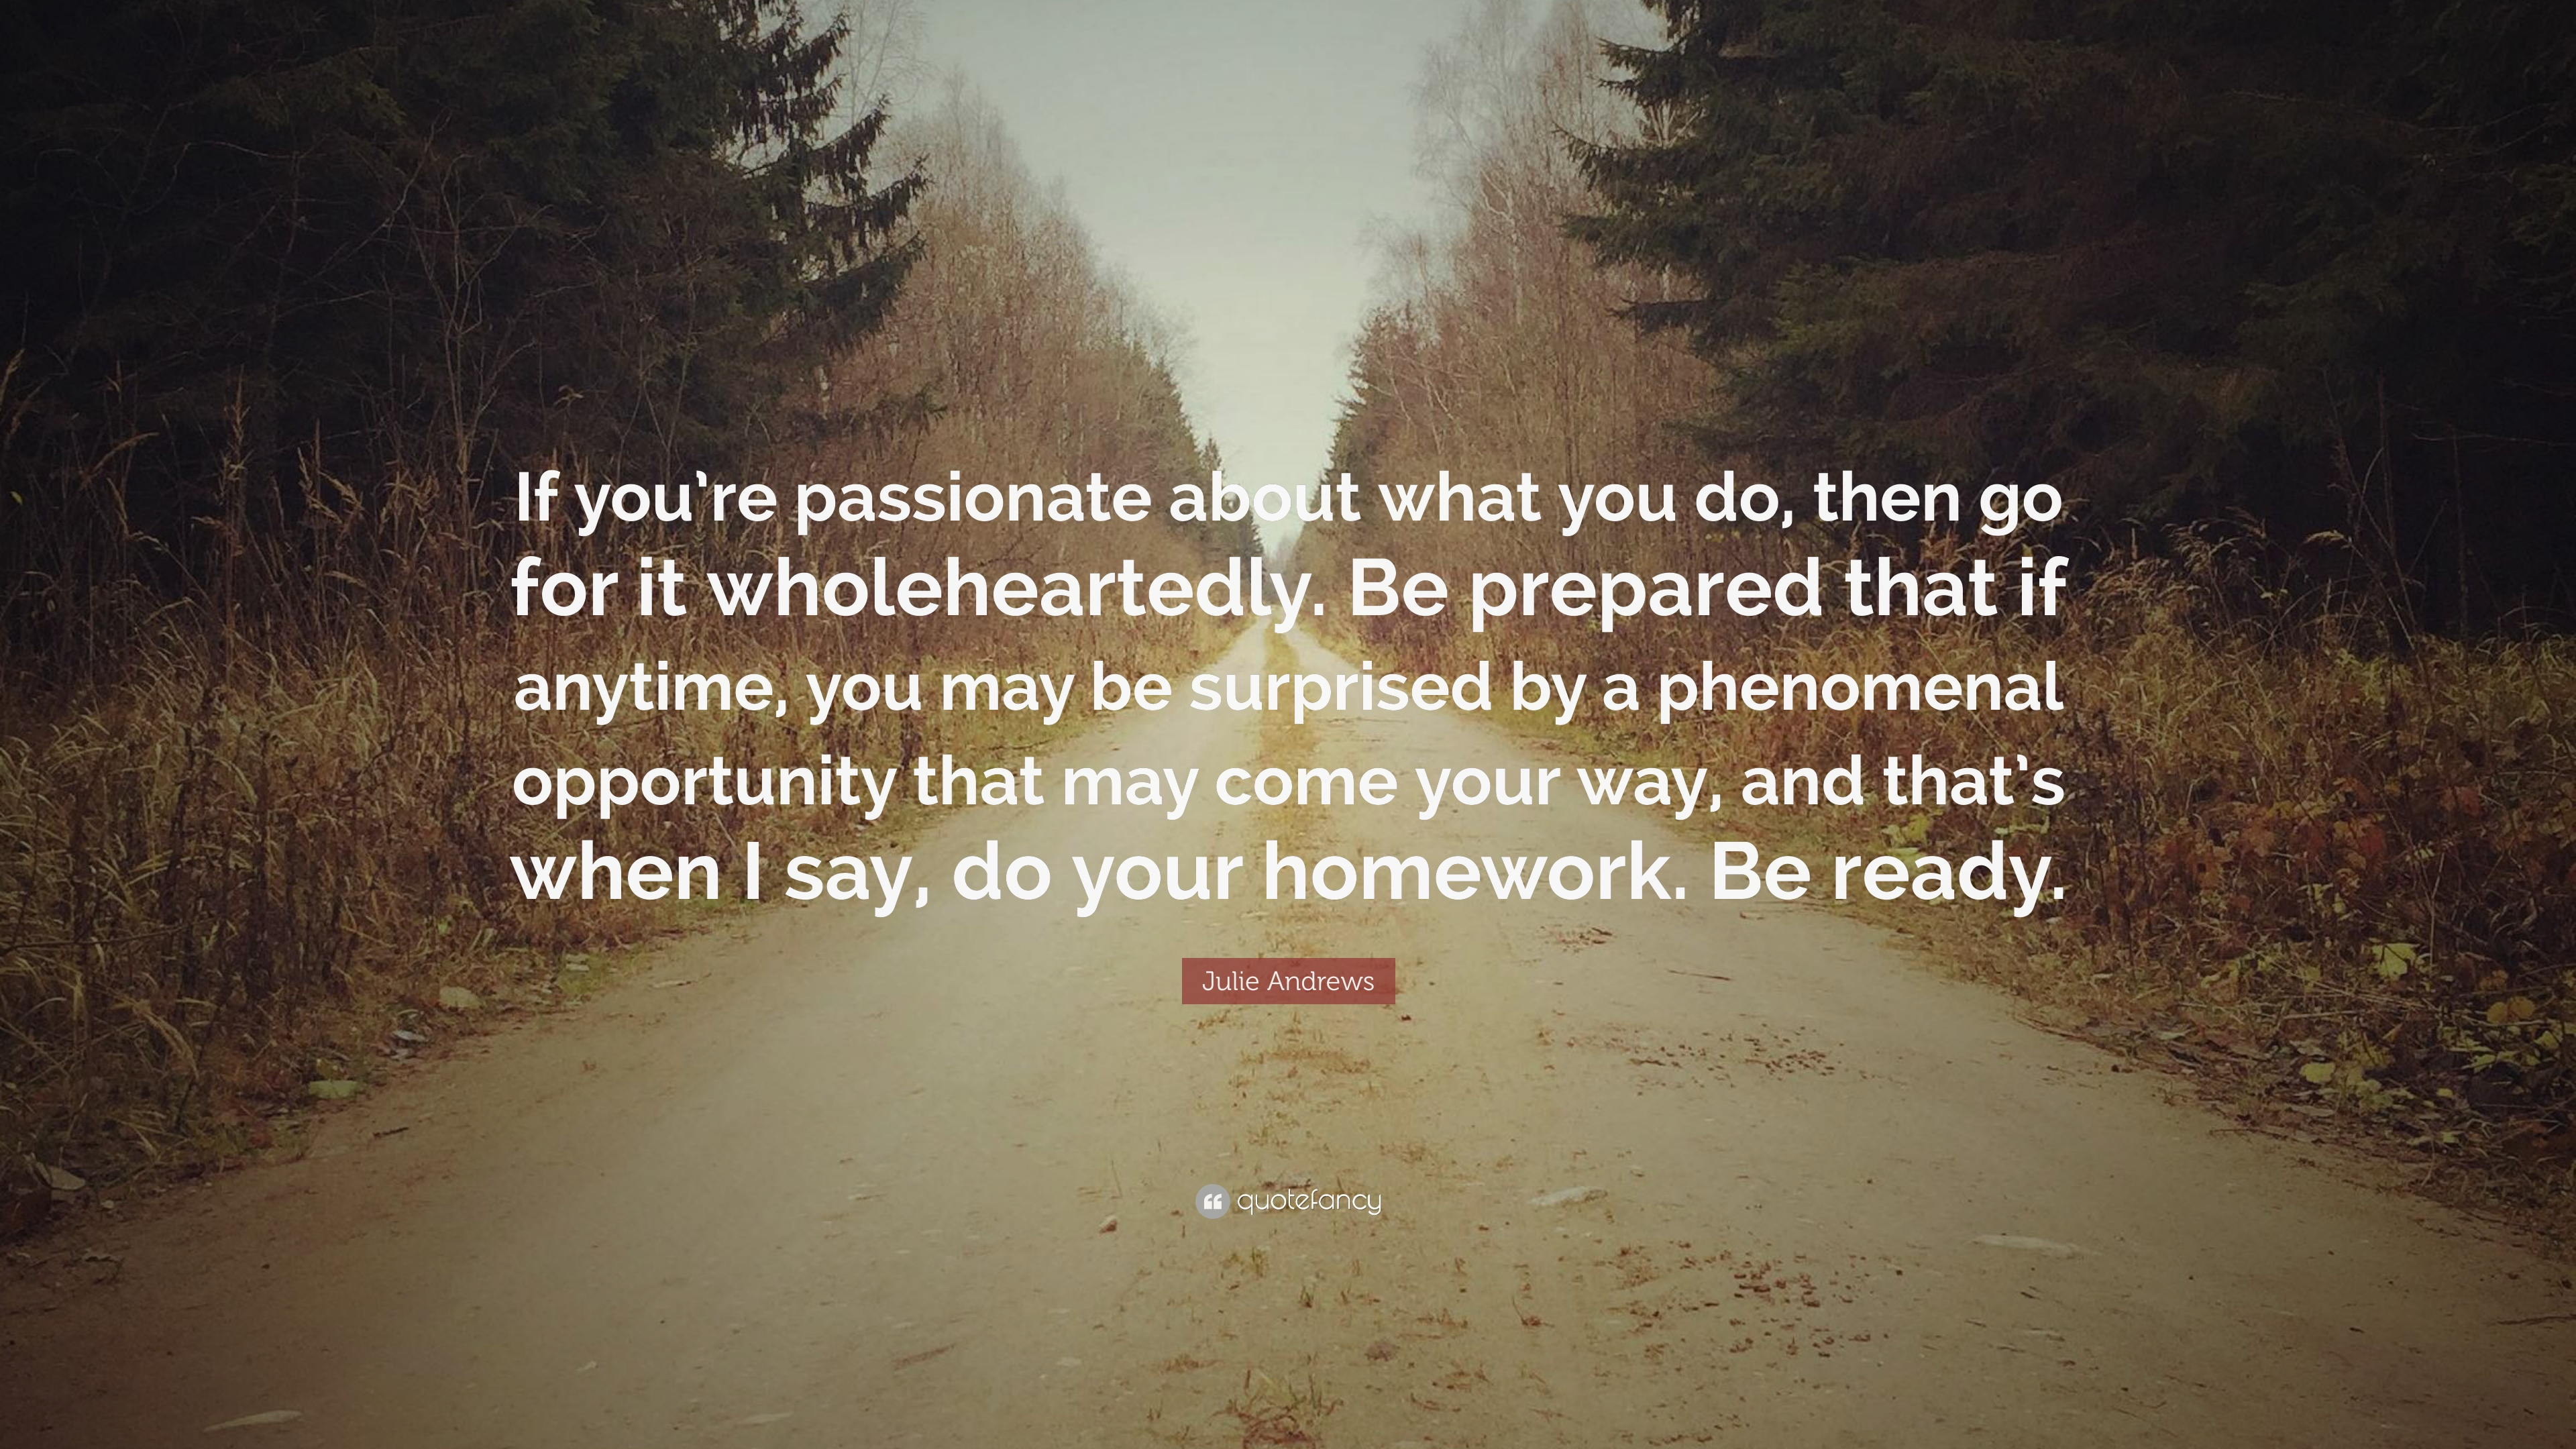 julie andrews quote if you re passionate about what you do then julie andrews quote if you re passionate about what you do then